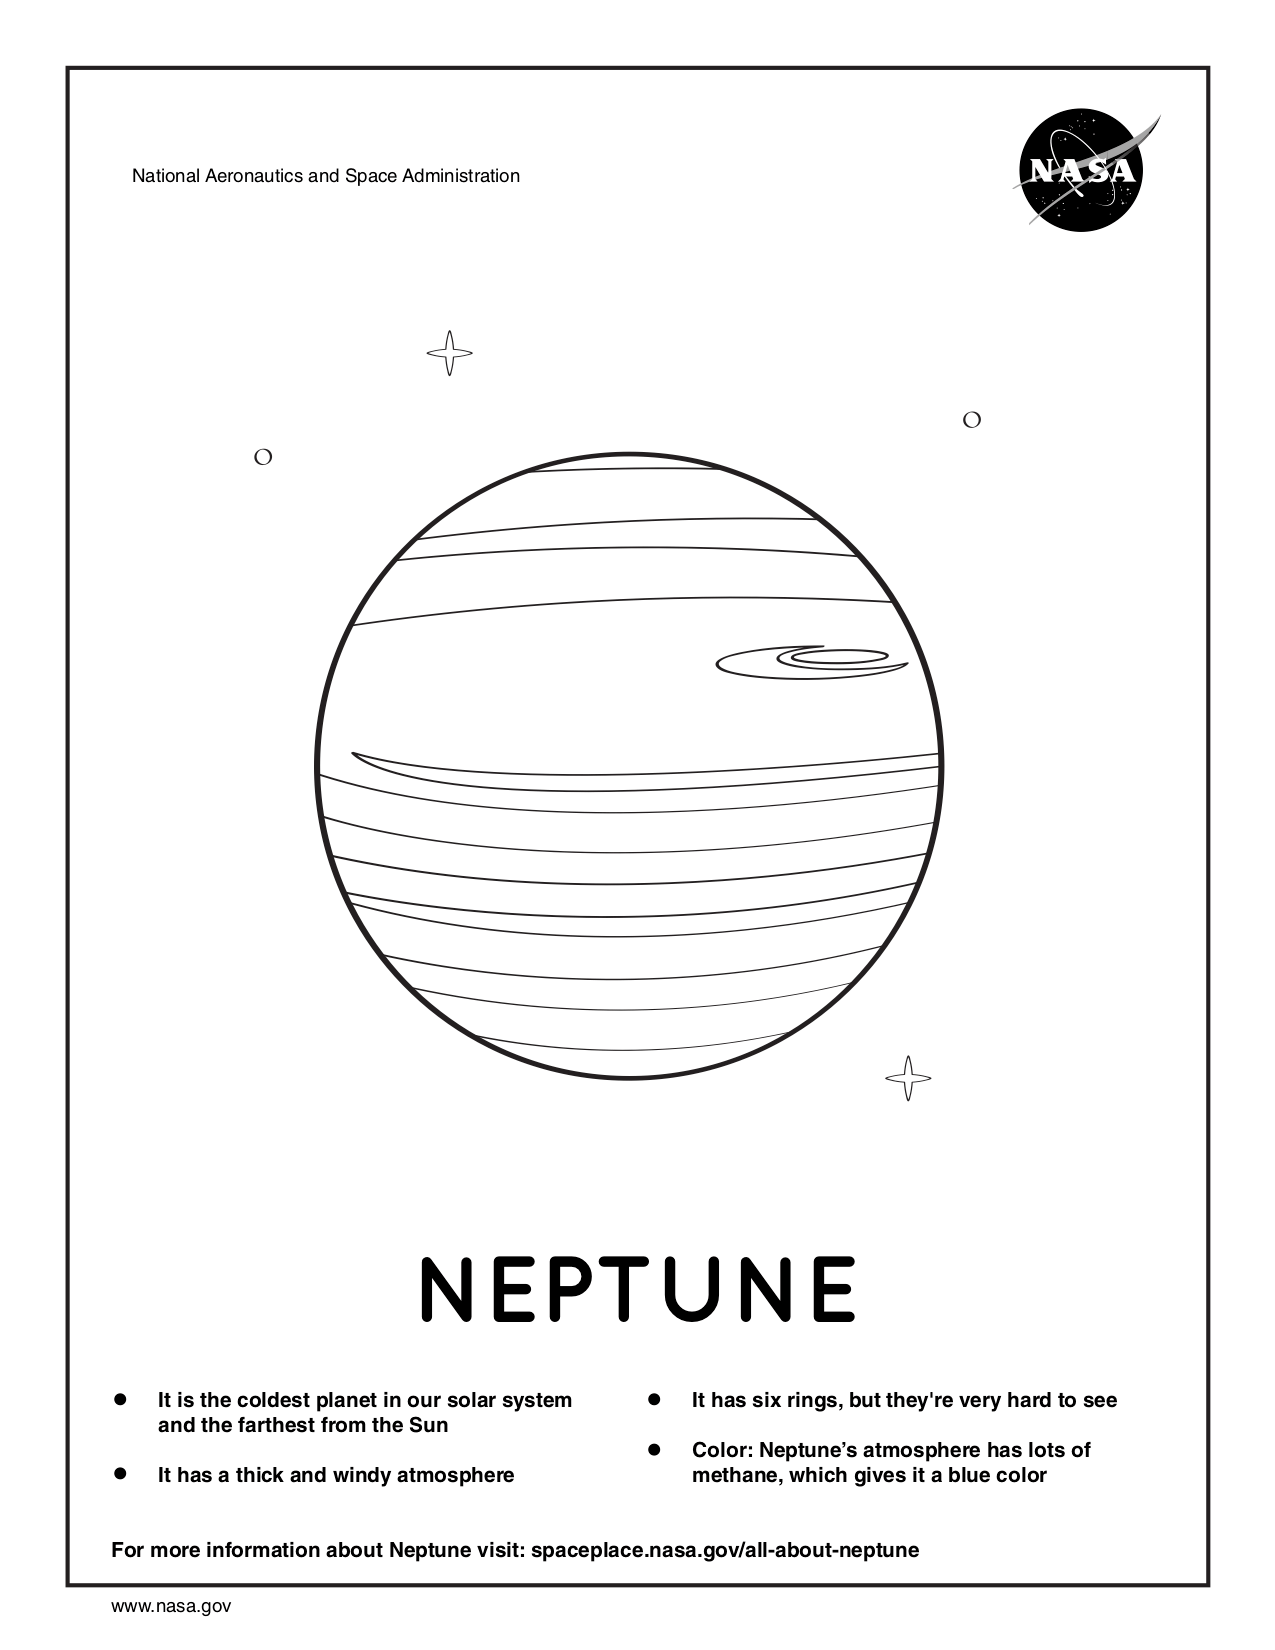 Coloring page for Neptune.